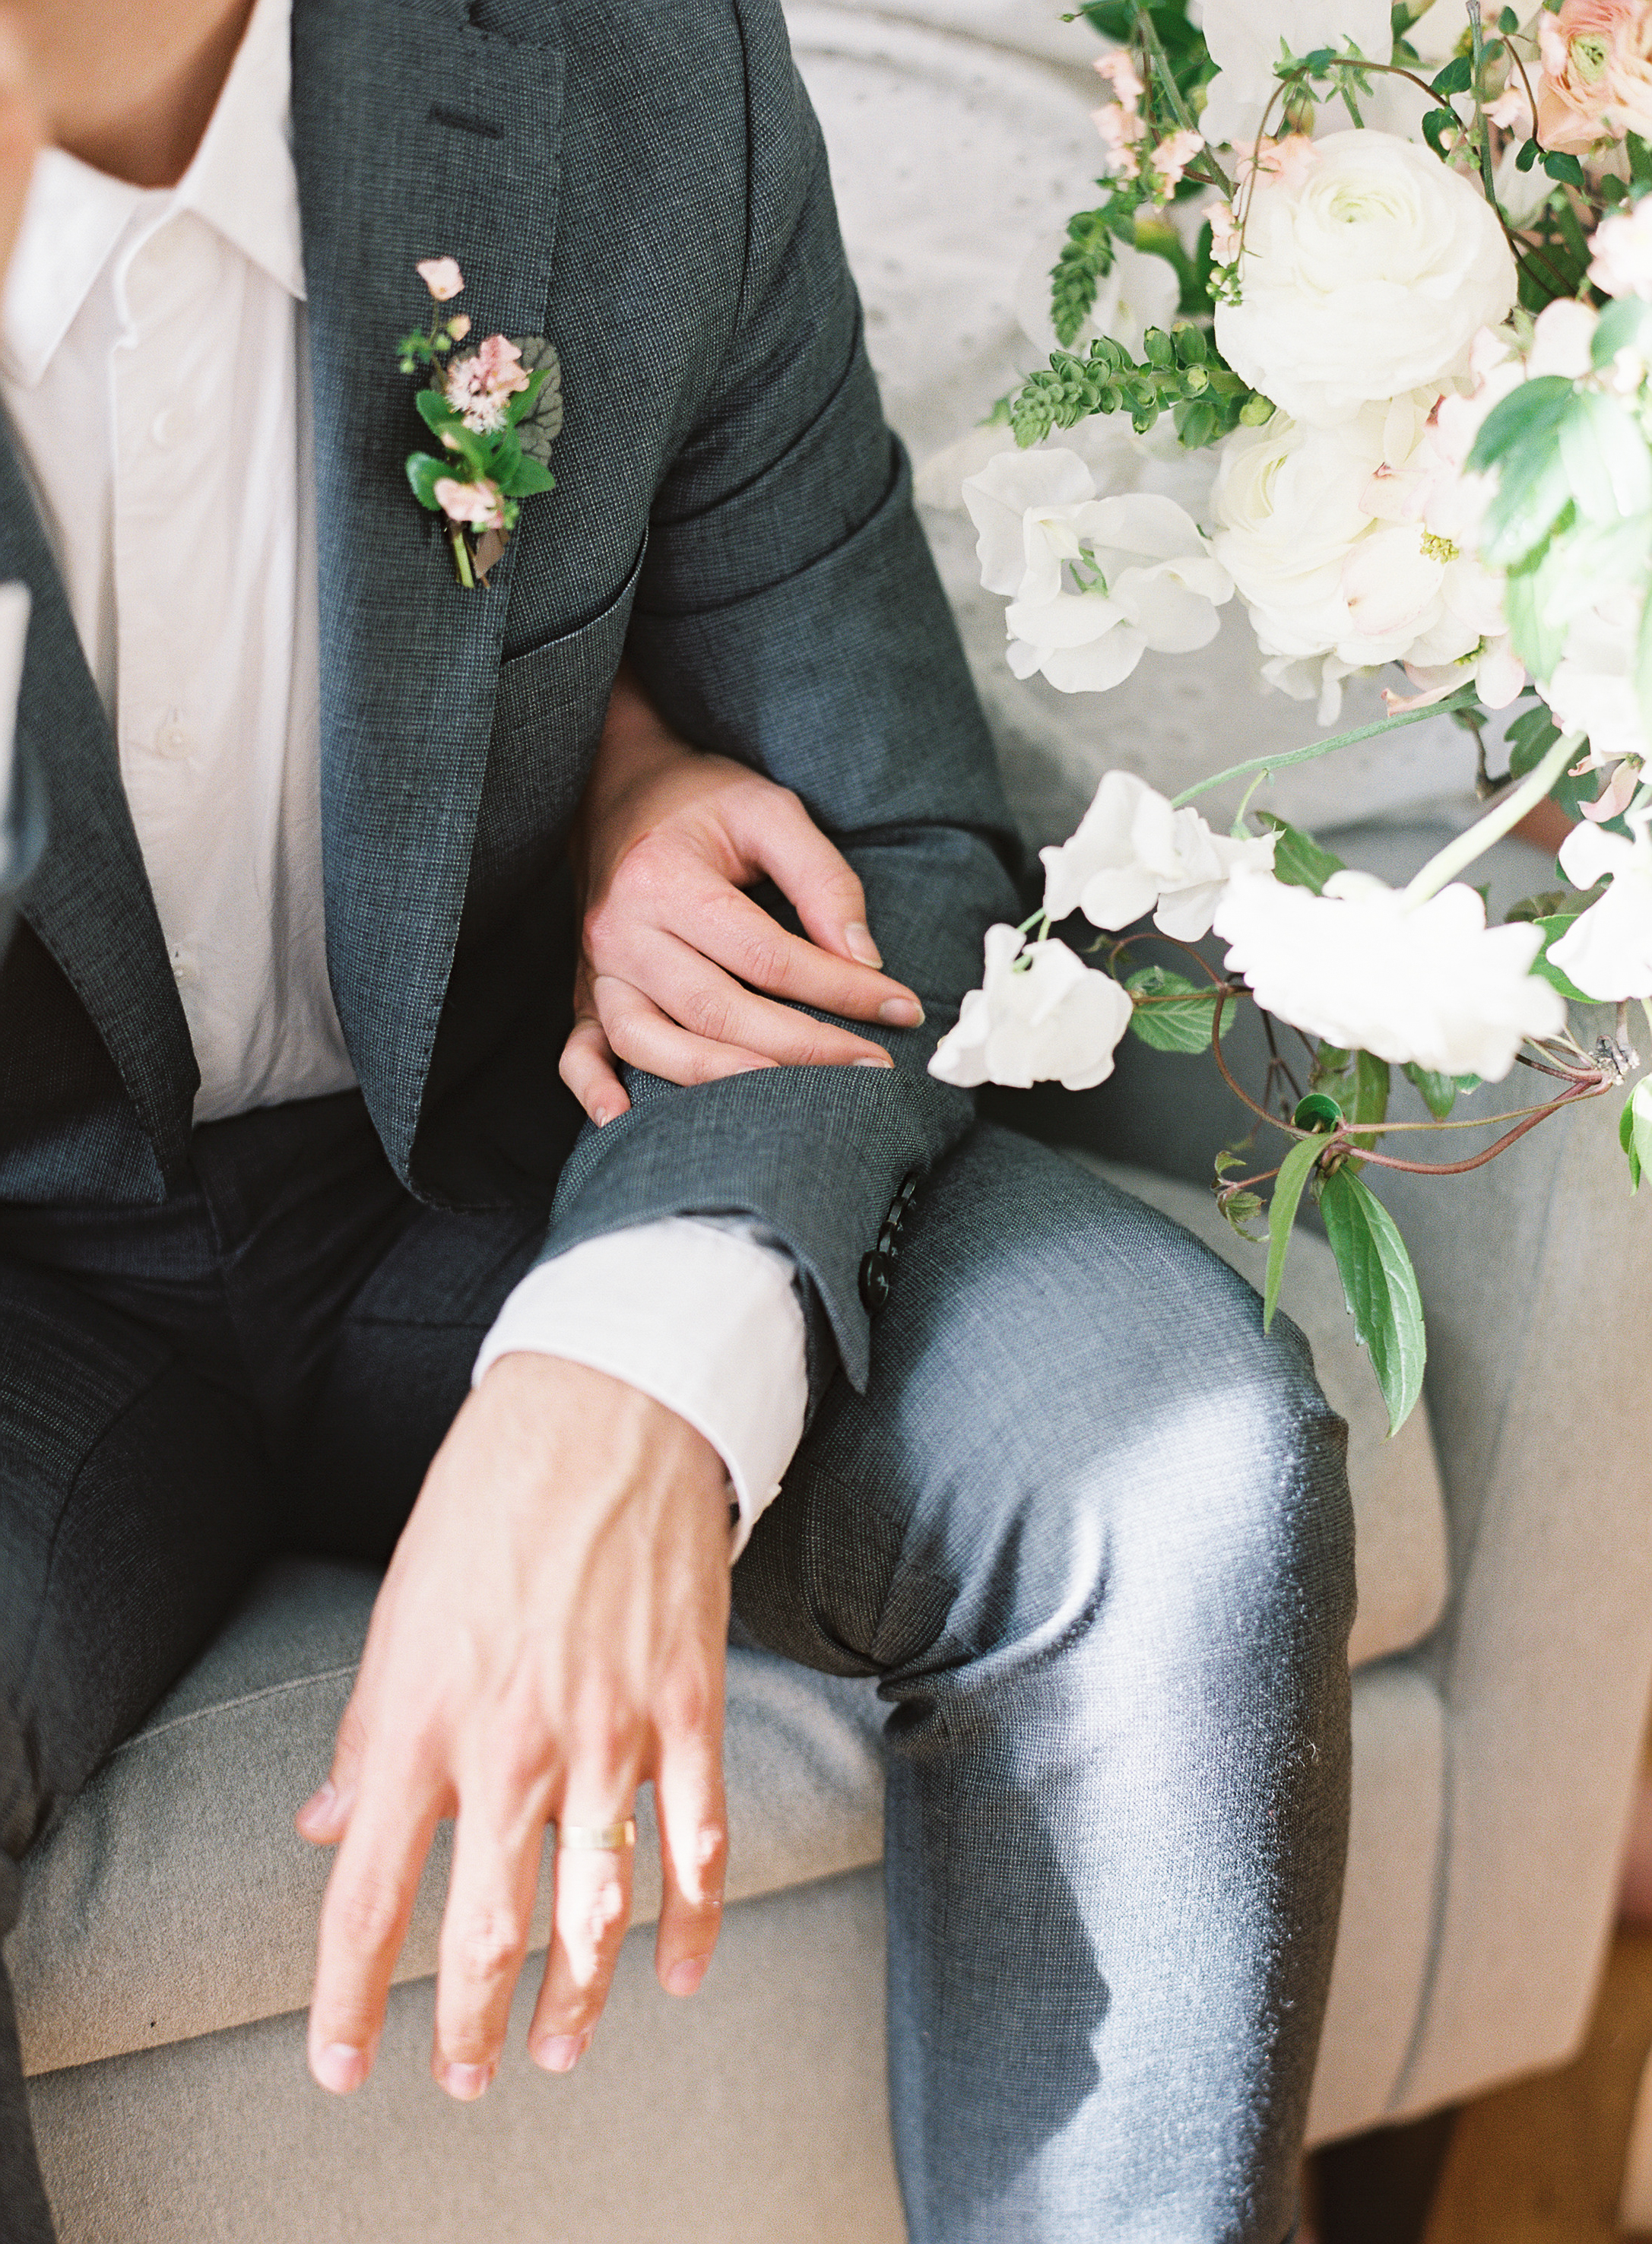 Meghan Mehan Photography | Fine Art Film Wedding Photographer | California | San Francisco | Napa | Sonoma | Santa Barbara | Big Sur | Los Angeles | Destination Wedding Photographer 029.jpg